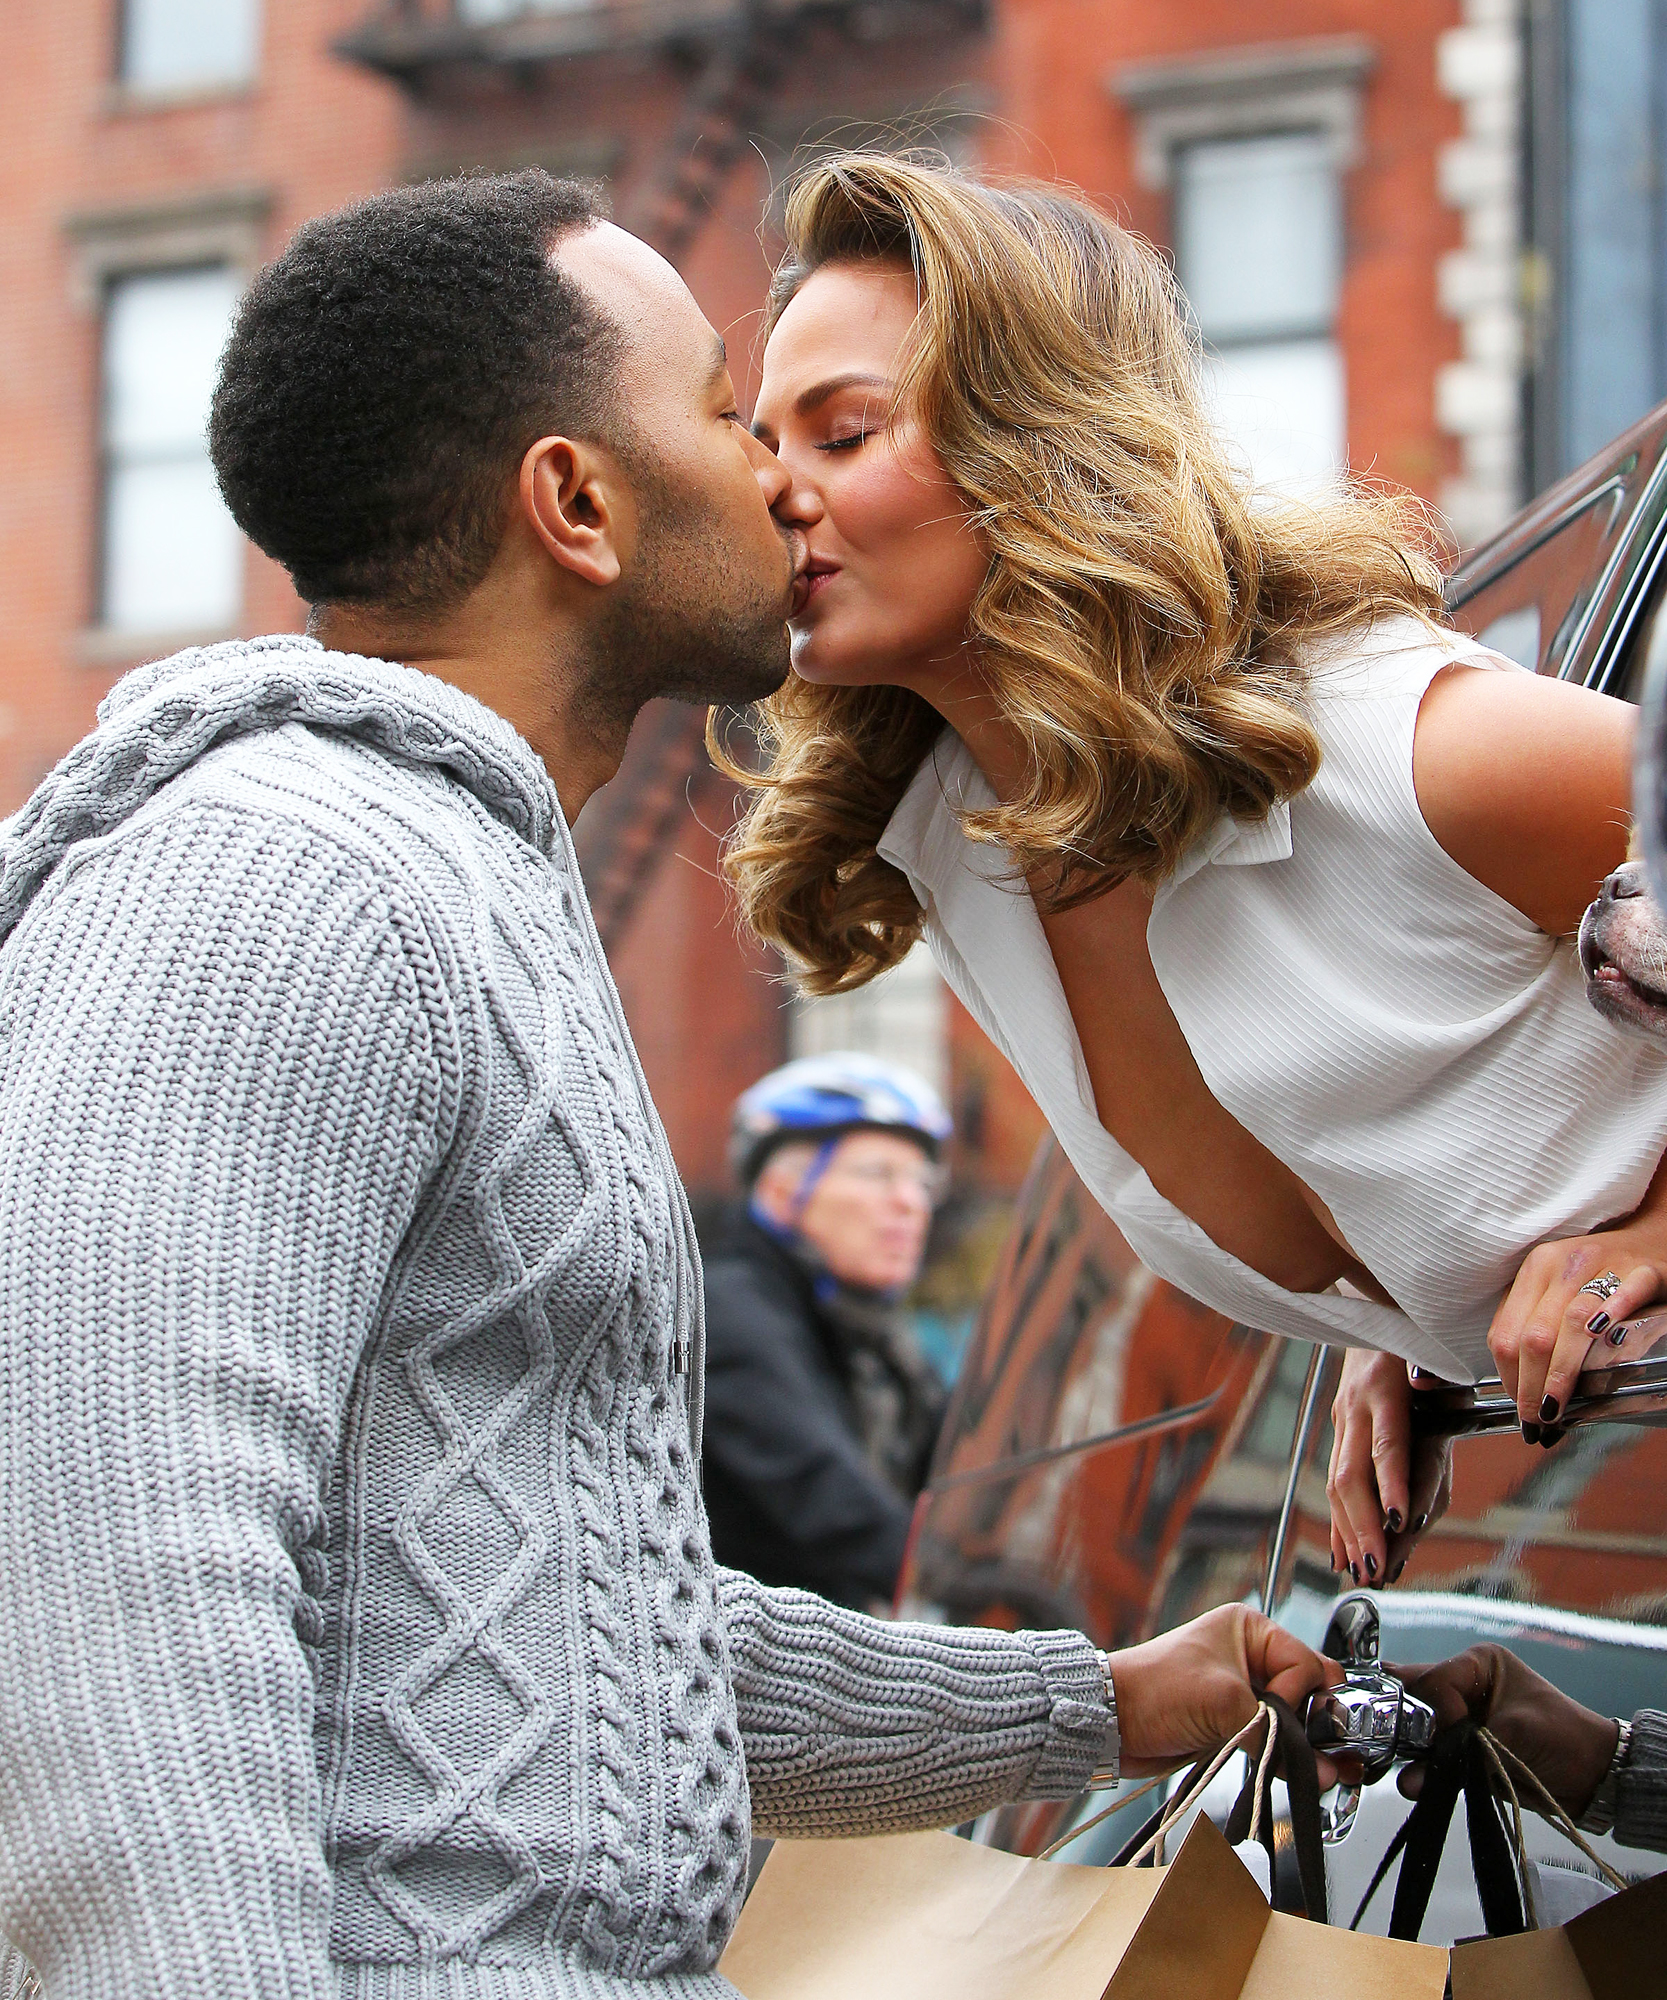 John Legend and Chrissy Teigen spotted taking part in a photo shoot in NYC